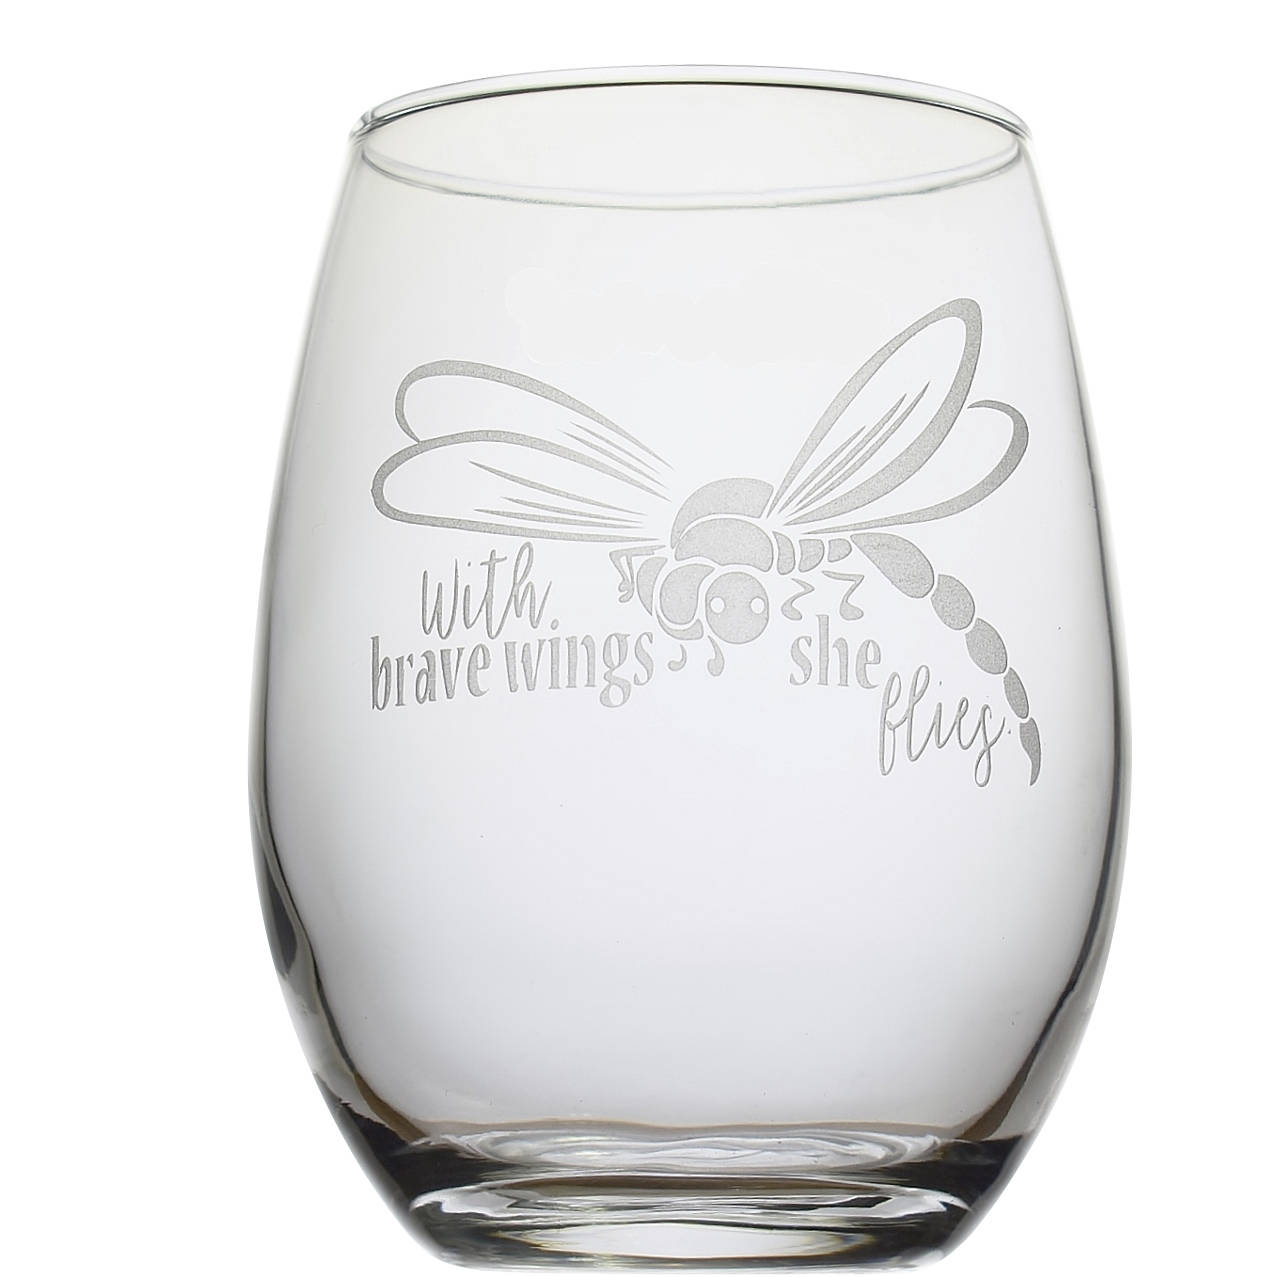 With Brave Wings She Flies Dragonfly Stemless Wine Glass Cancer Inspirational Gift for Her